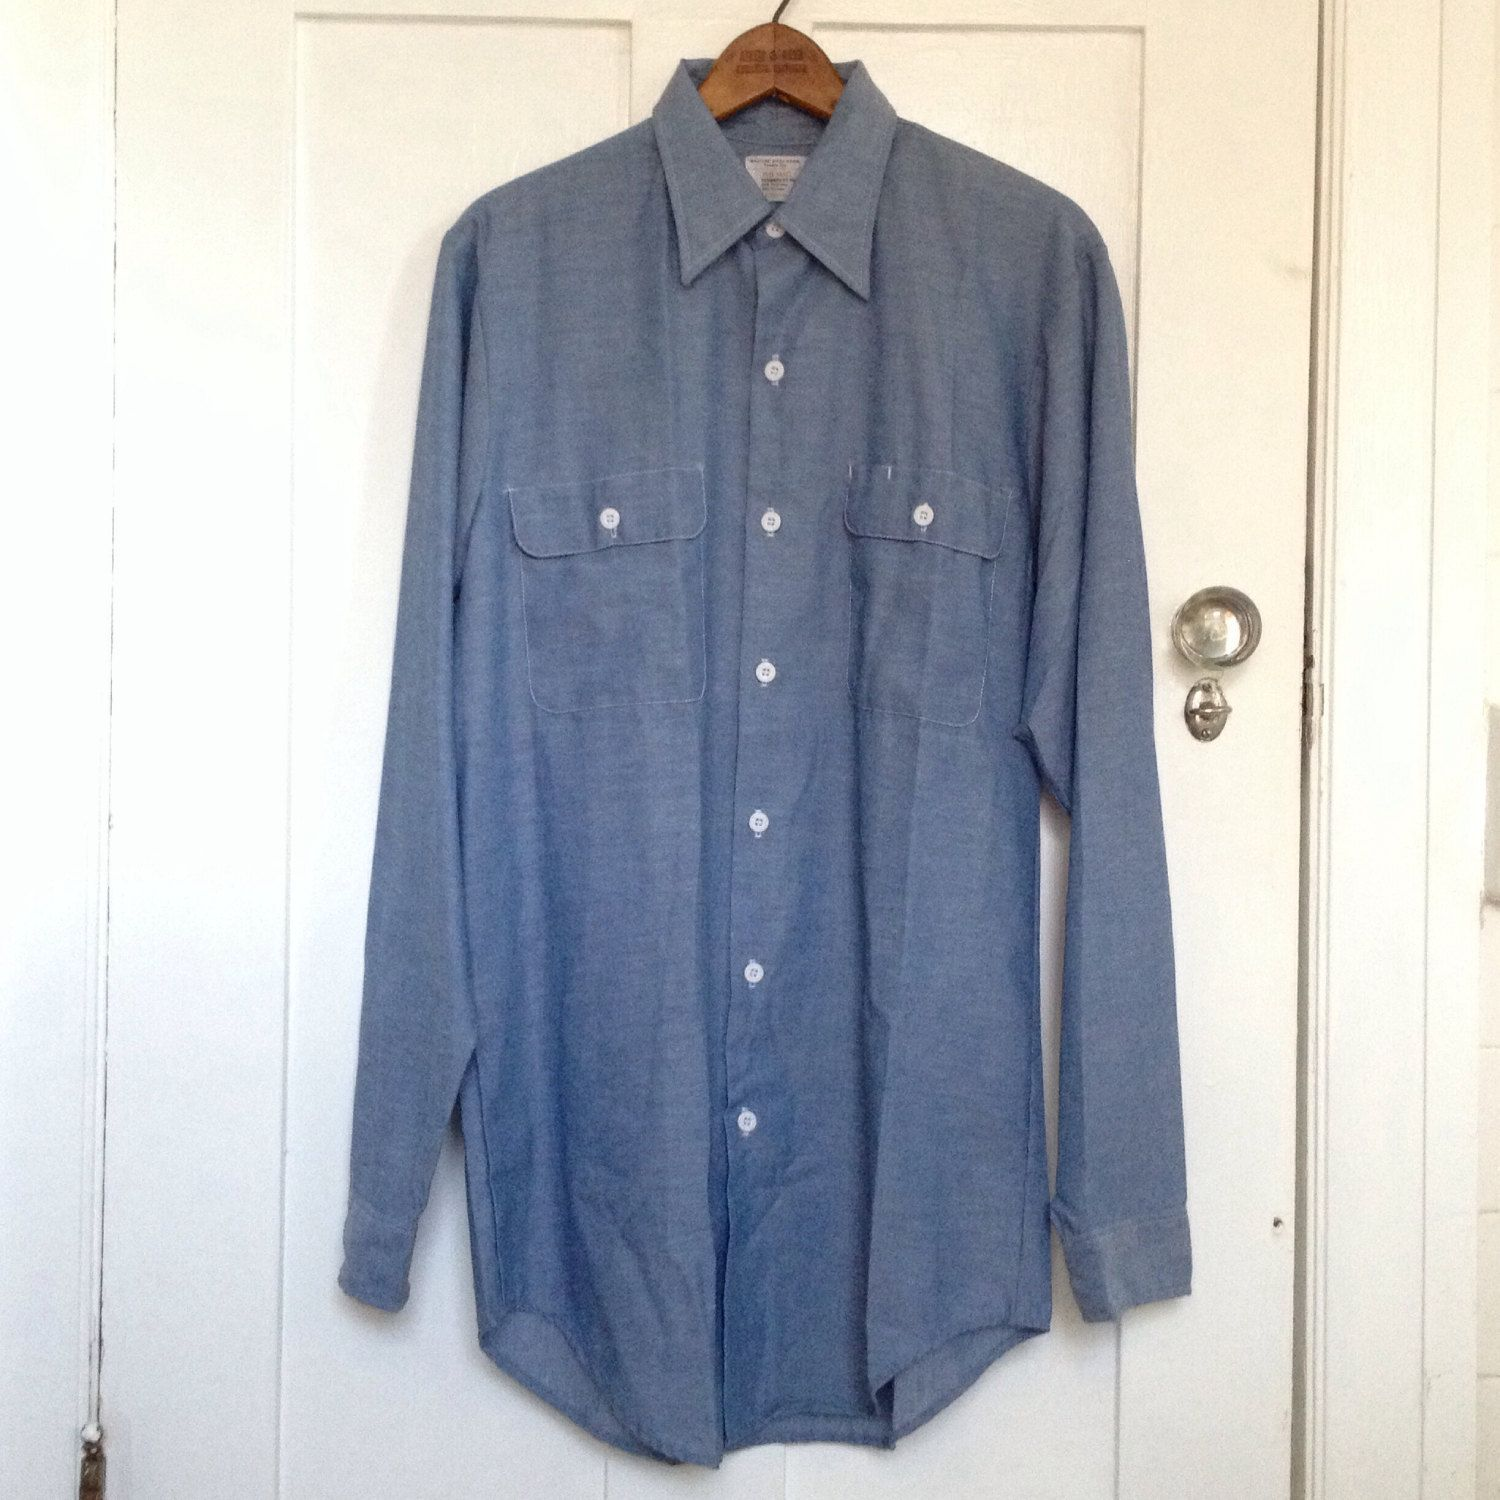 Vintage Deadstock Chambray Long Sleeve Button Down / Blue Oxford Button Up / Light Blue Chambray Shirt mN7tn0j